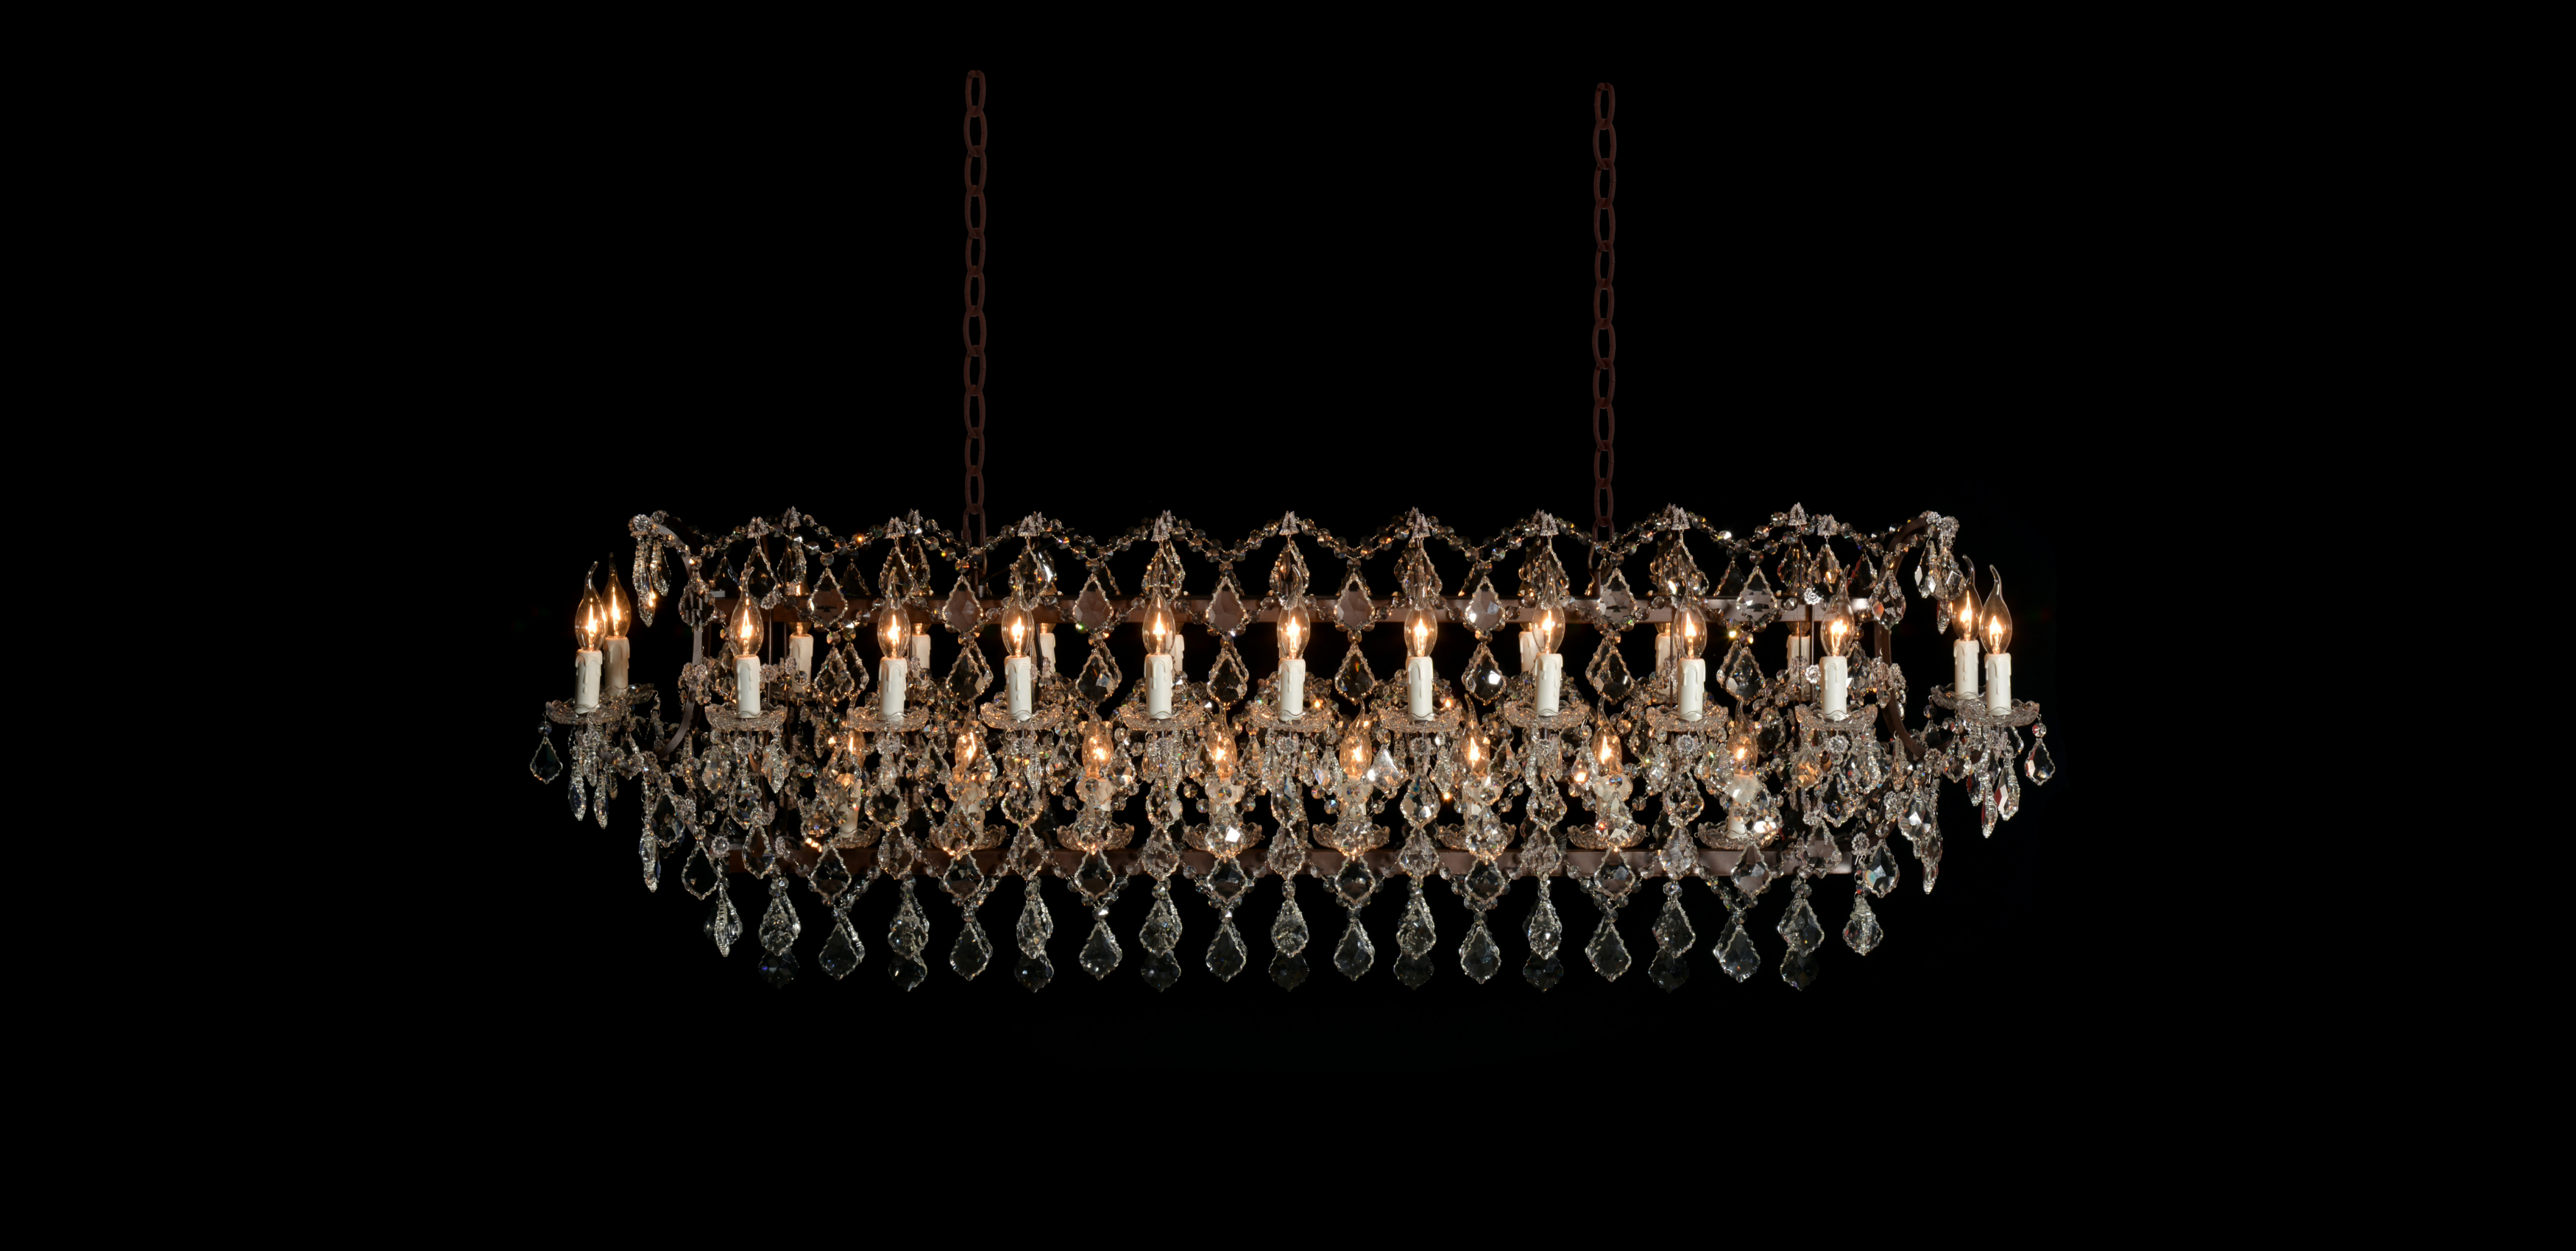 Crystal chandelier timothy oulton timothy oulton crystal chandelier rectangular chandelier in natural mozeypictures Images